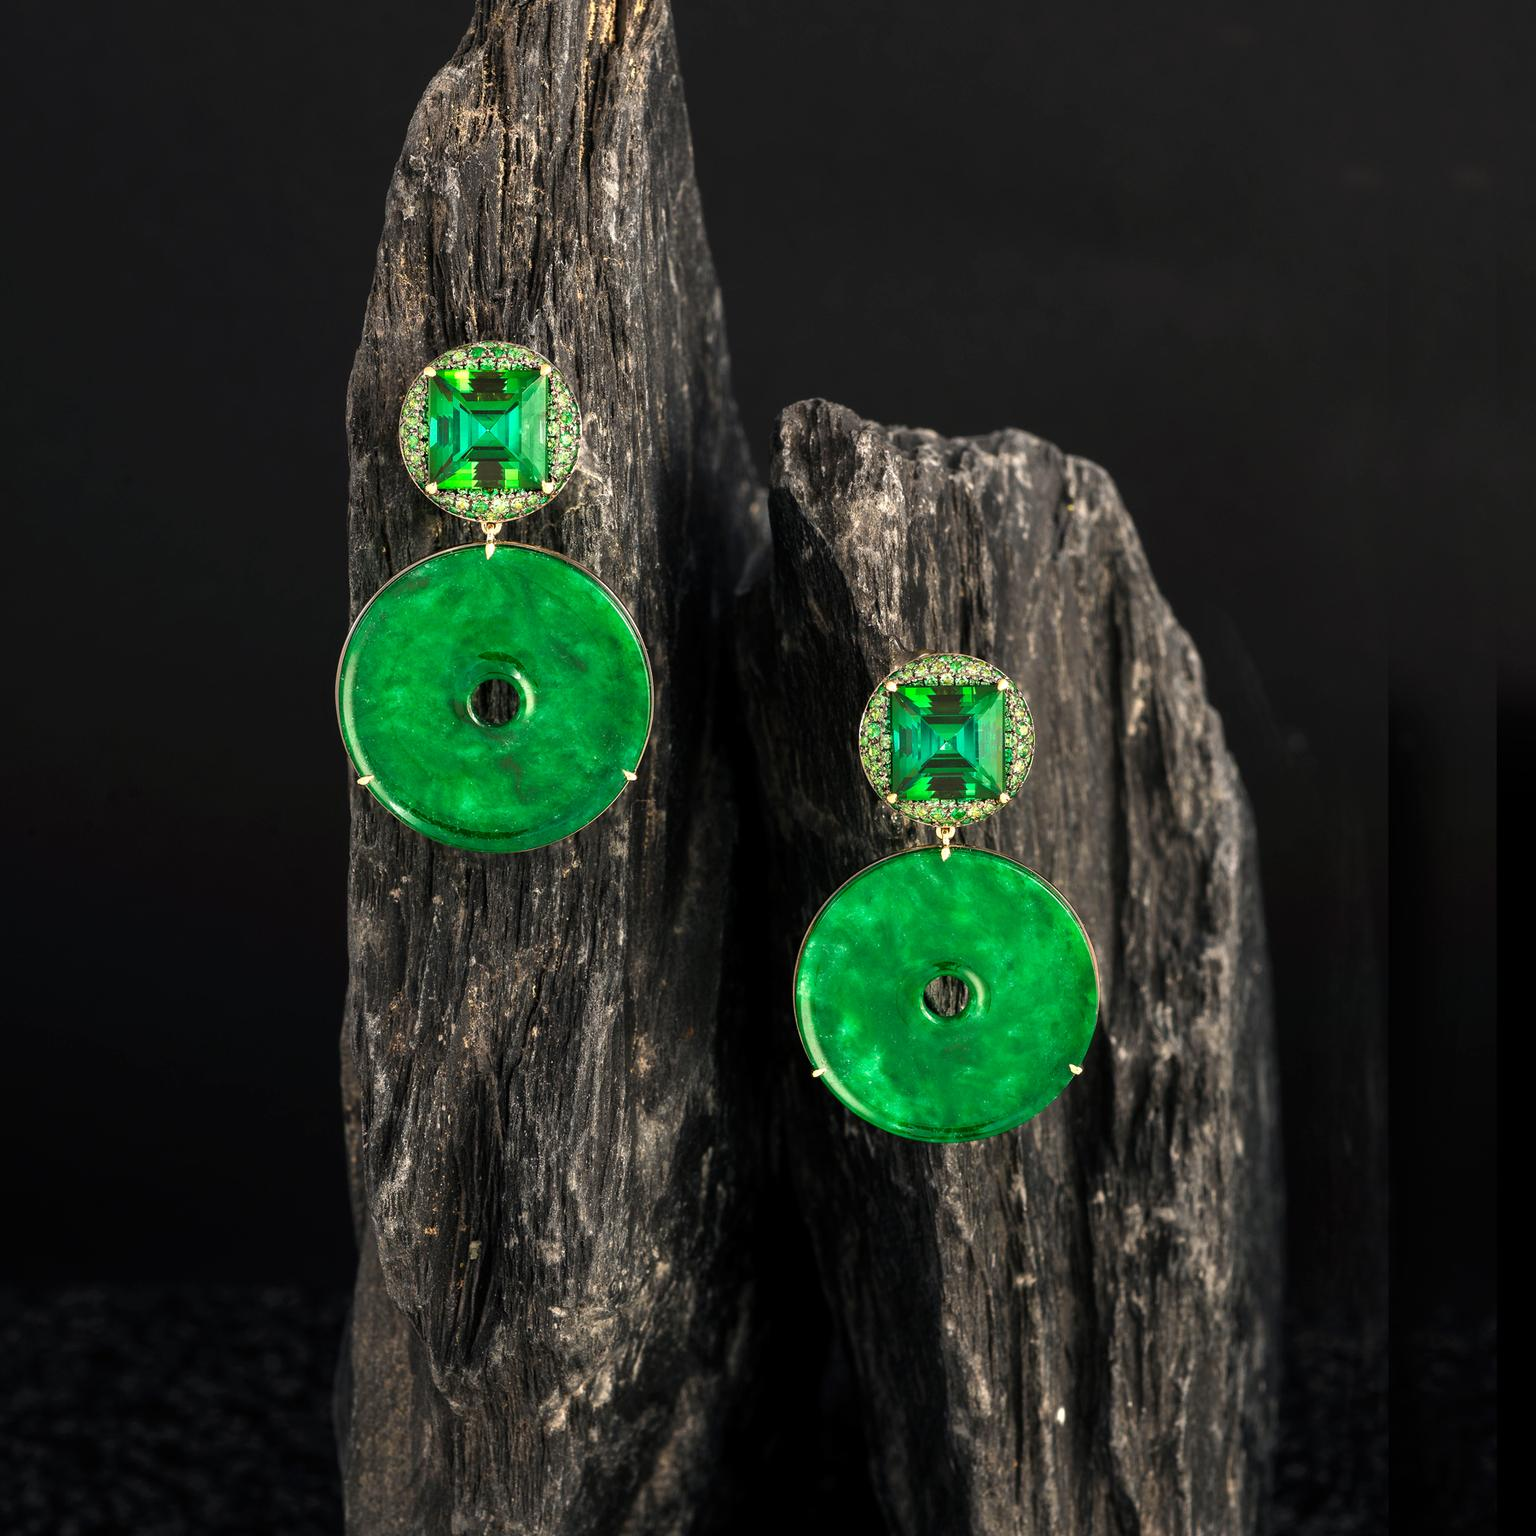 Doris Hangartner star jade earrings